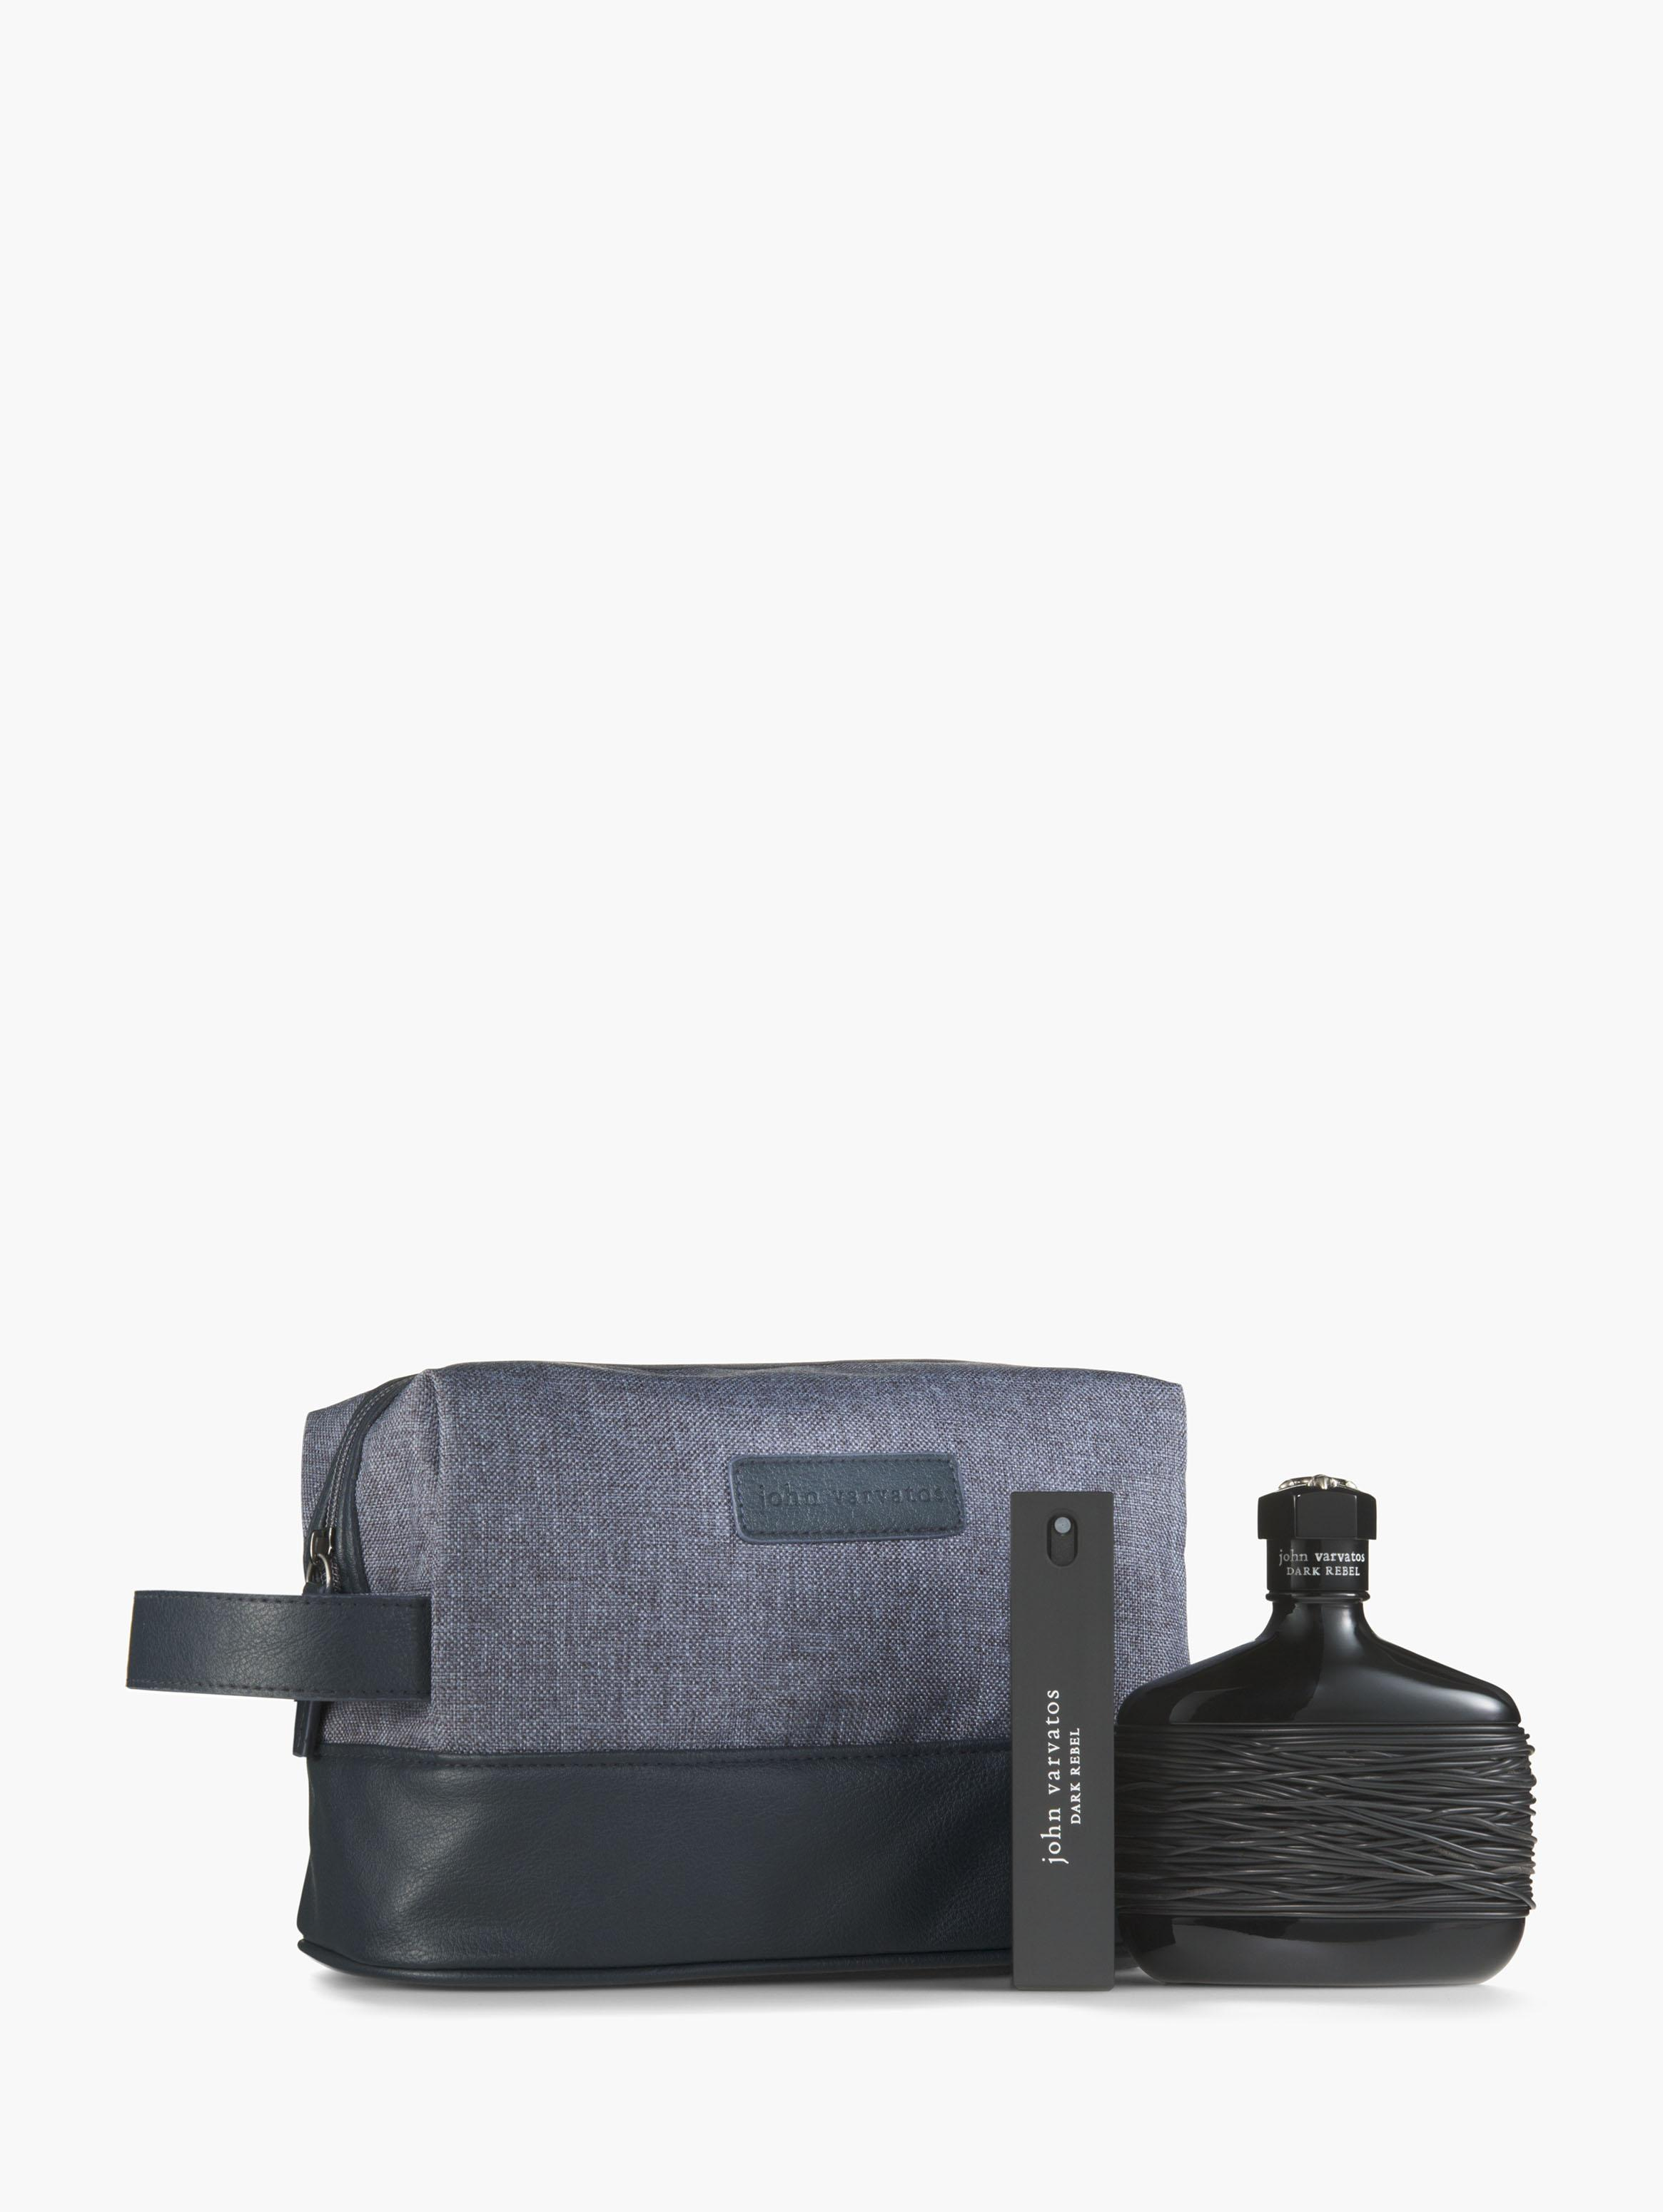 Dark Rebel 4.2oz Dopp Kit Set